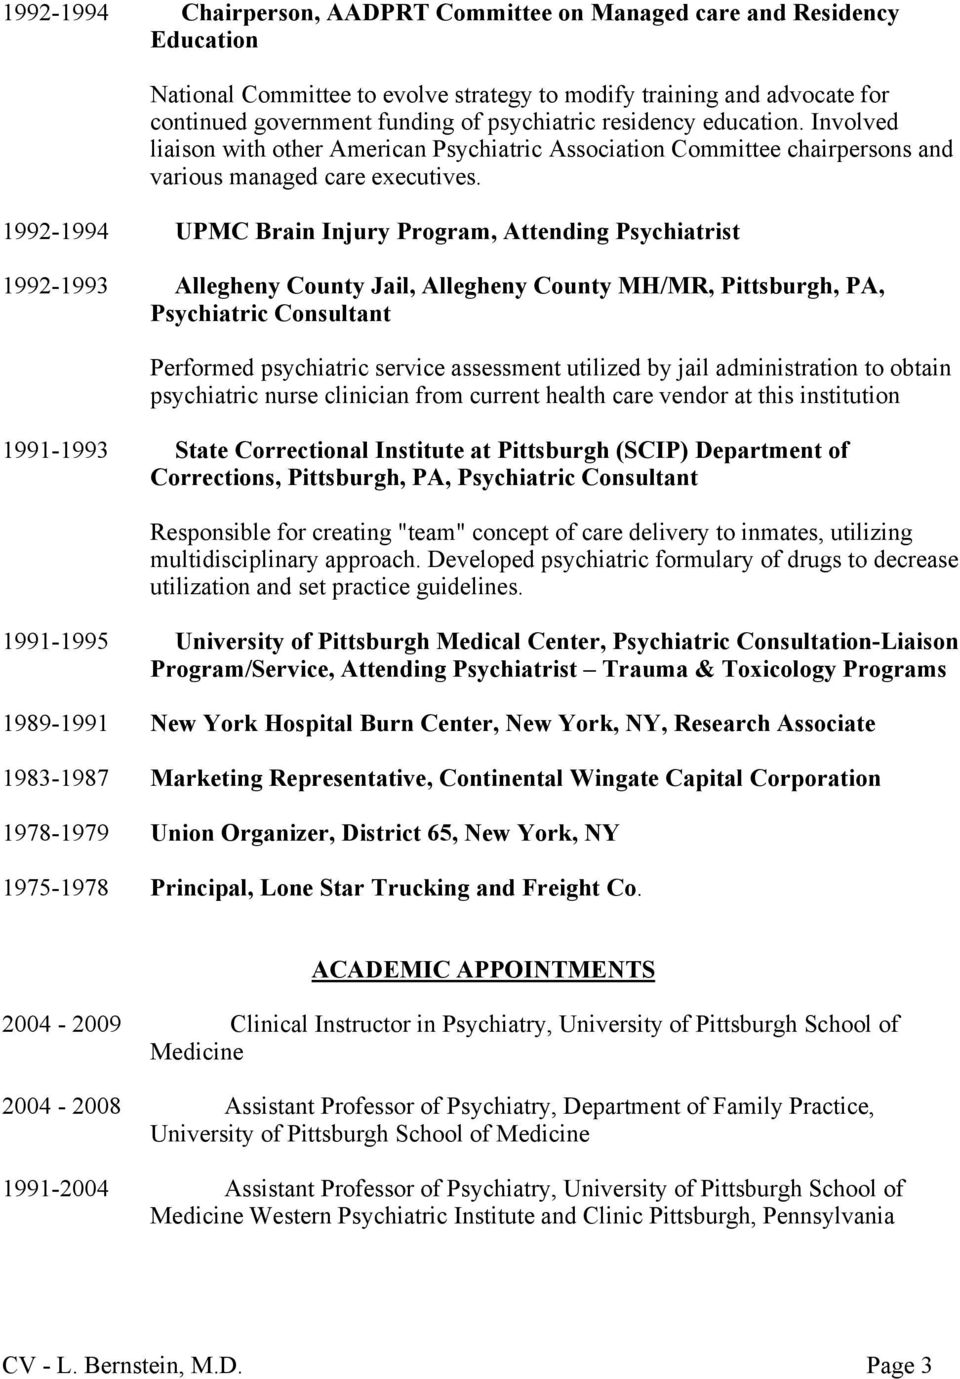 1992-1994 UPMC Brain Injury Program, Attending Psychiatrist 1992-1993 Allegheny County Jail, Allegheny County MH/MR, Pittsburgh, PA, Psychiatric Consultant Performed psychiatric service assessment